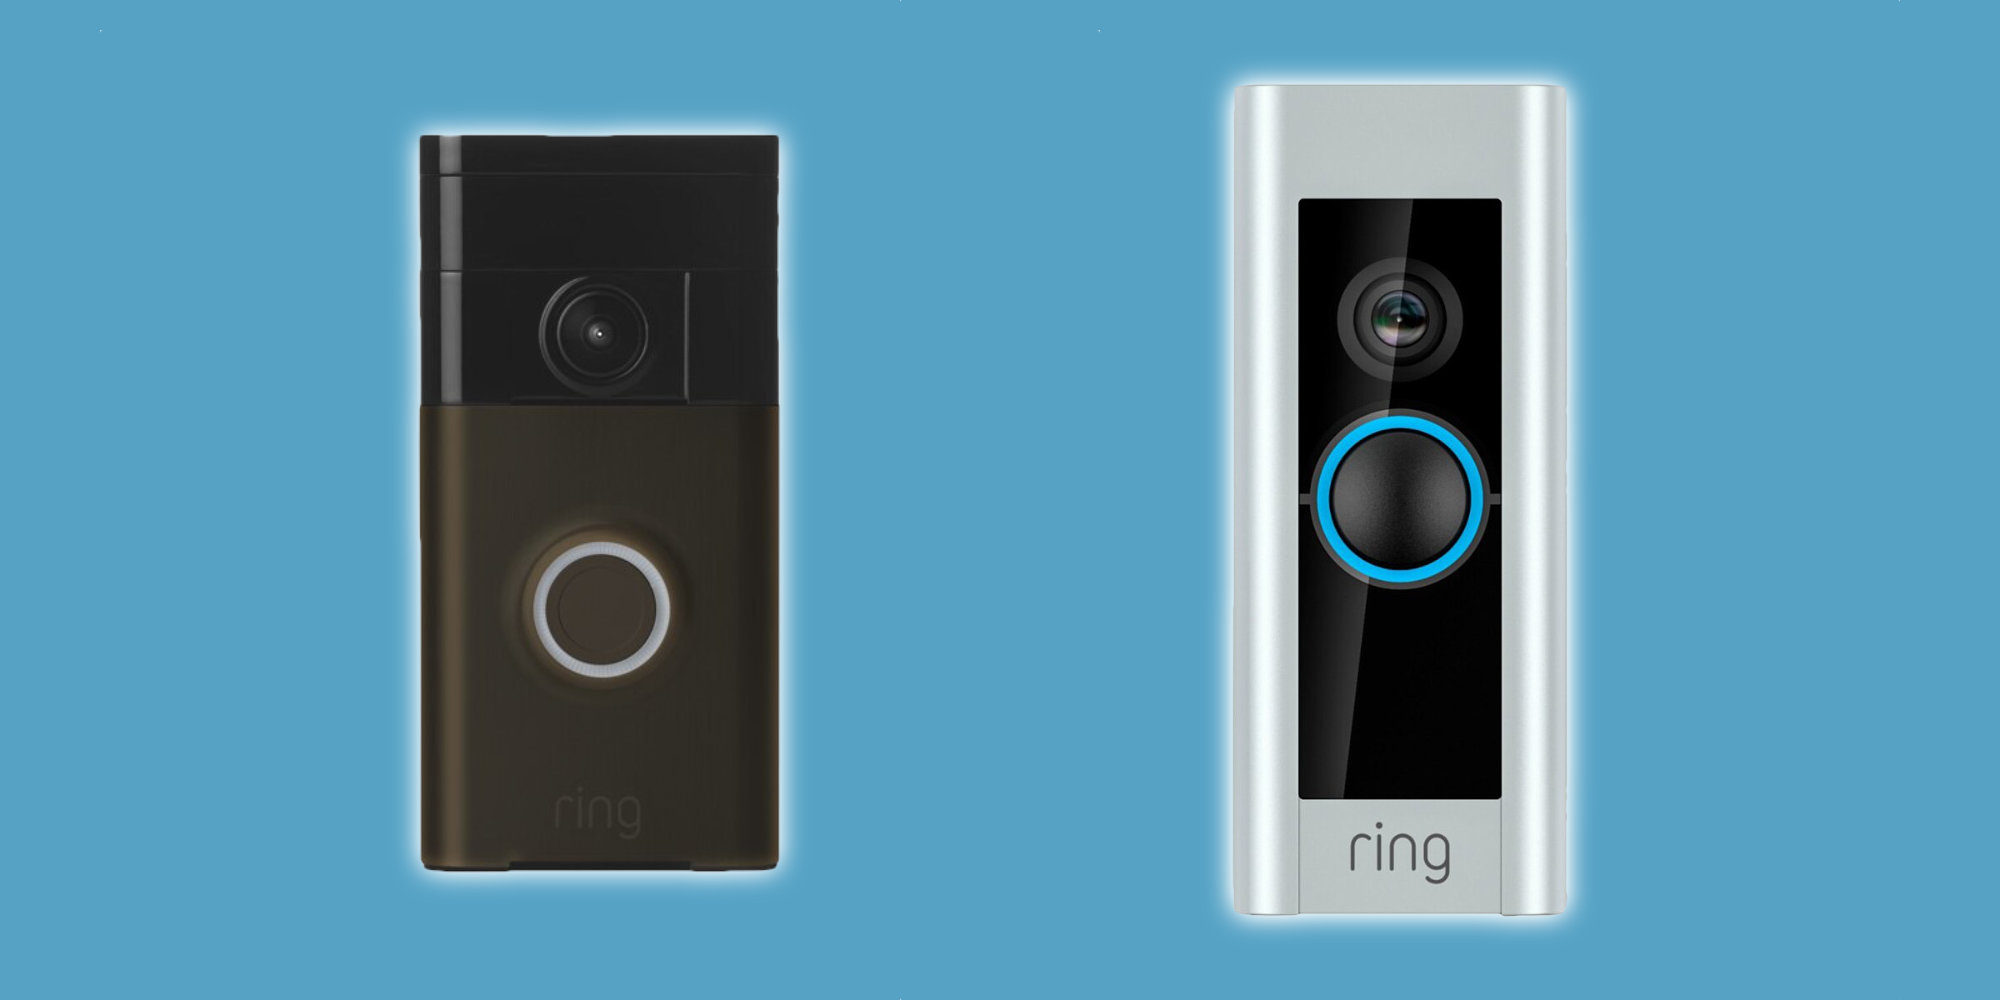 Outfit the front door with one of these Ring Video Doorbells from $69